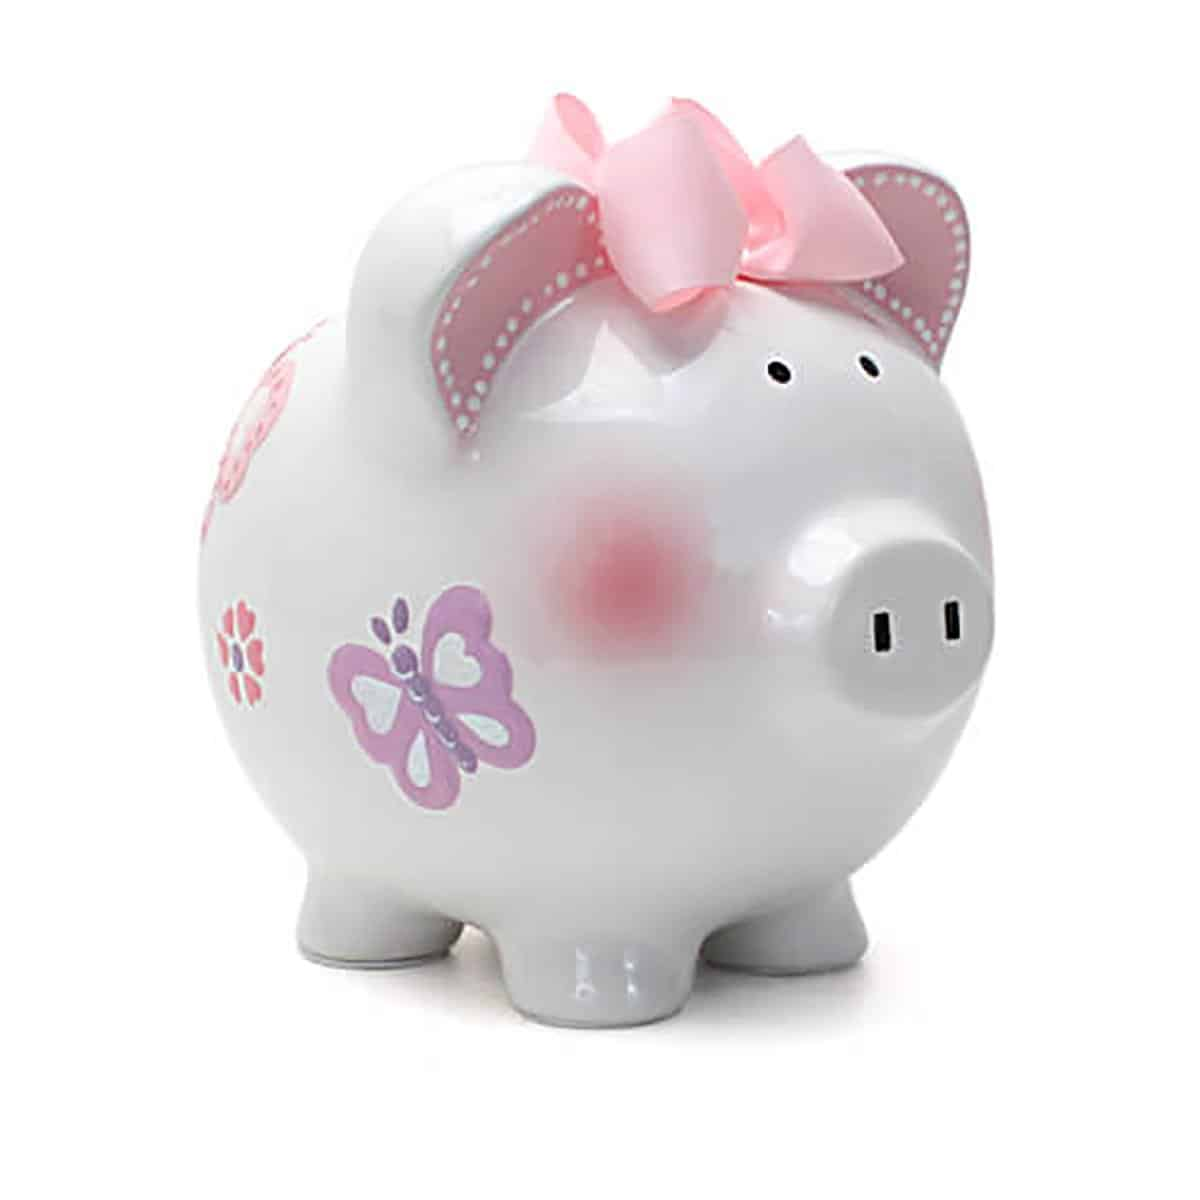 Child to Cherish Girls Ceramic Piggy Bank